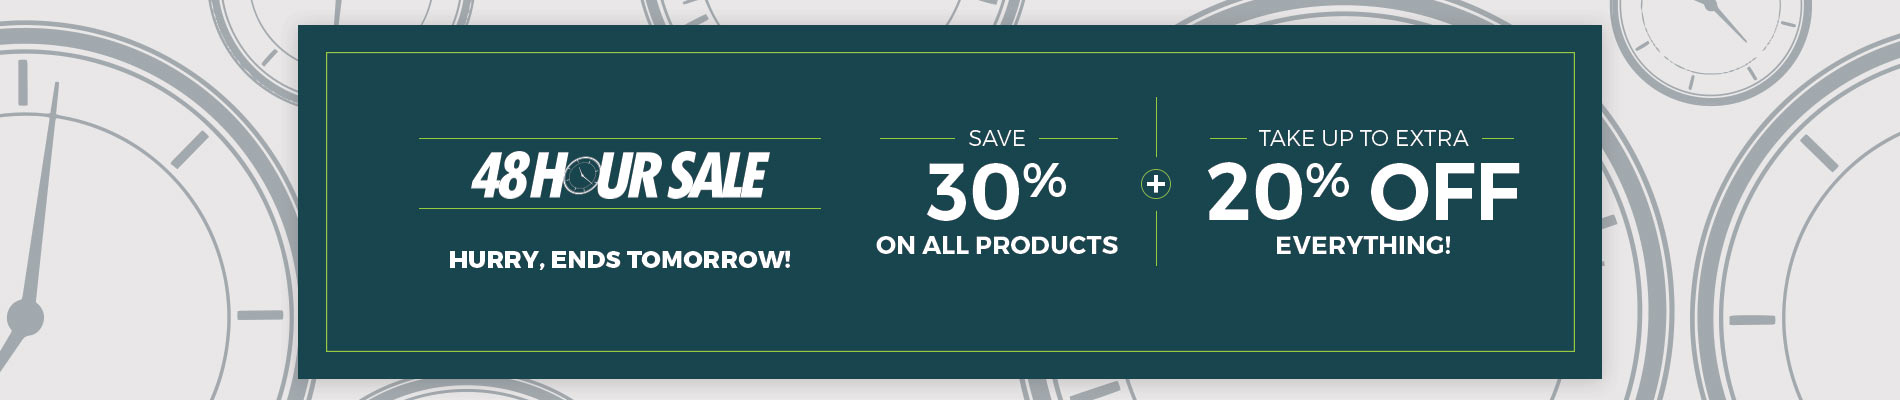 Save 30% + Take Up To 15% Off